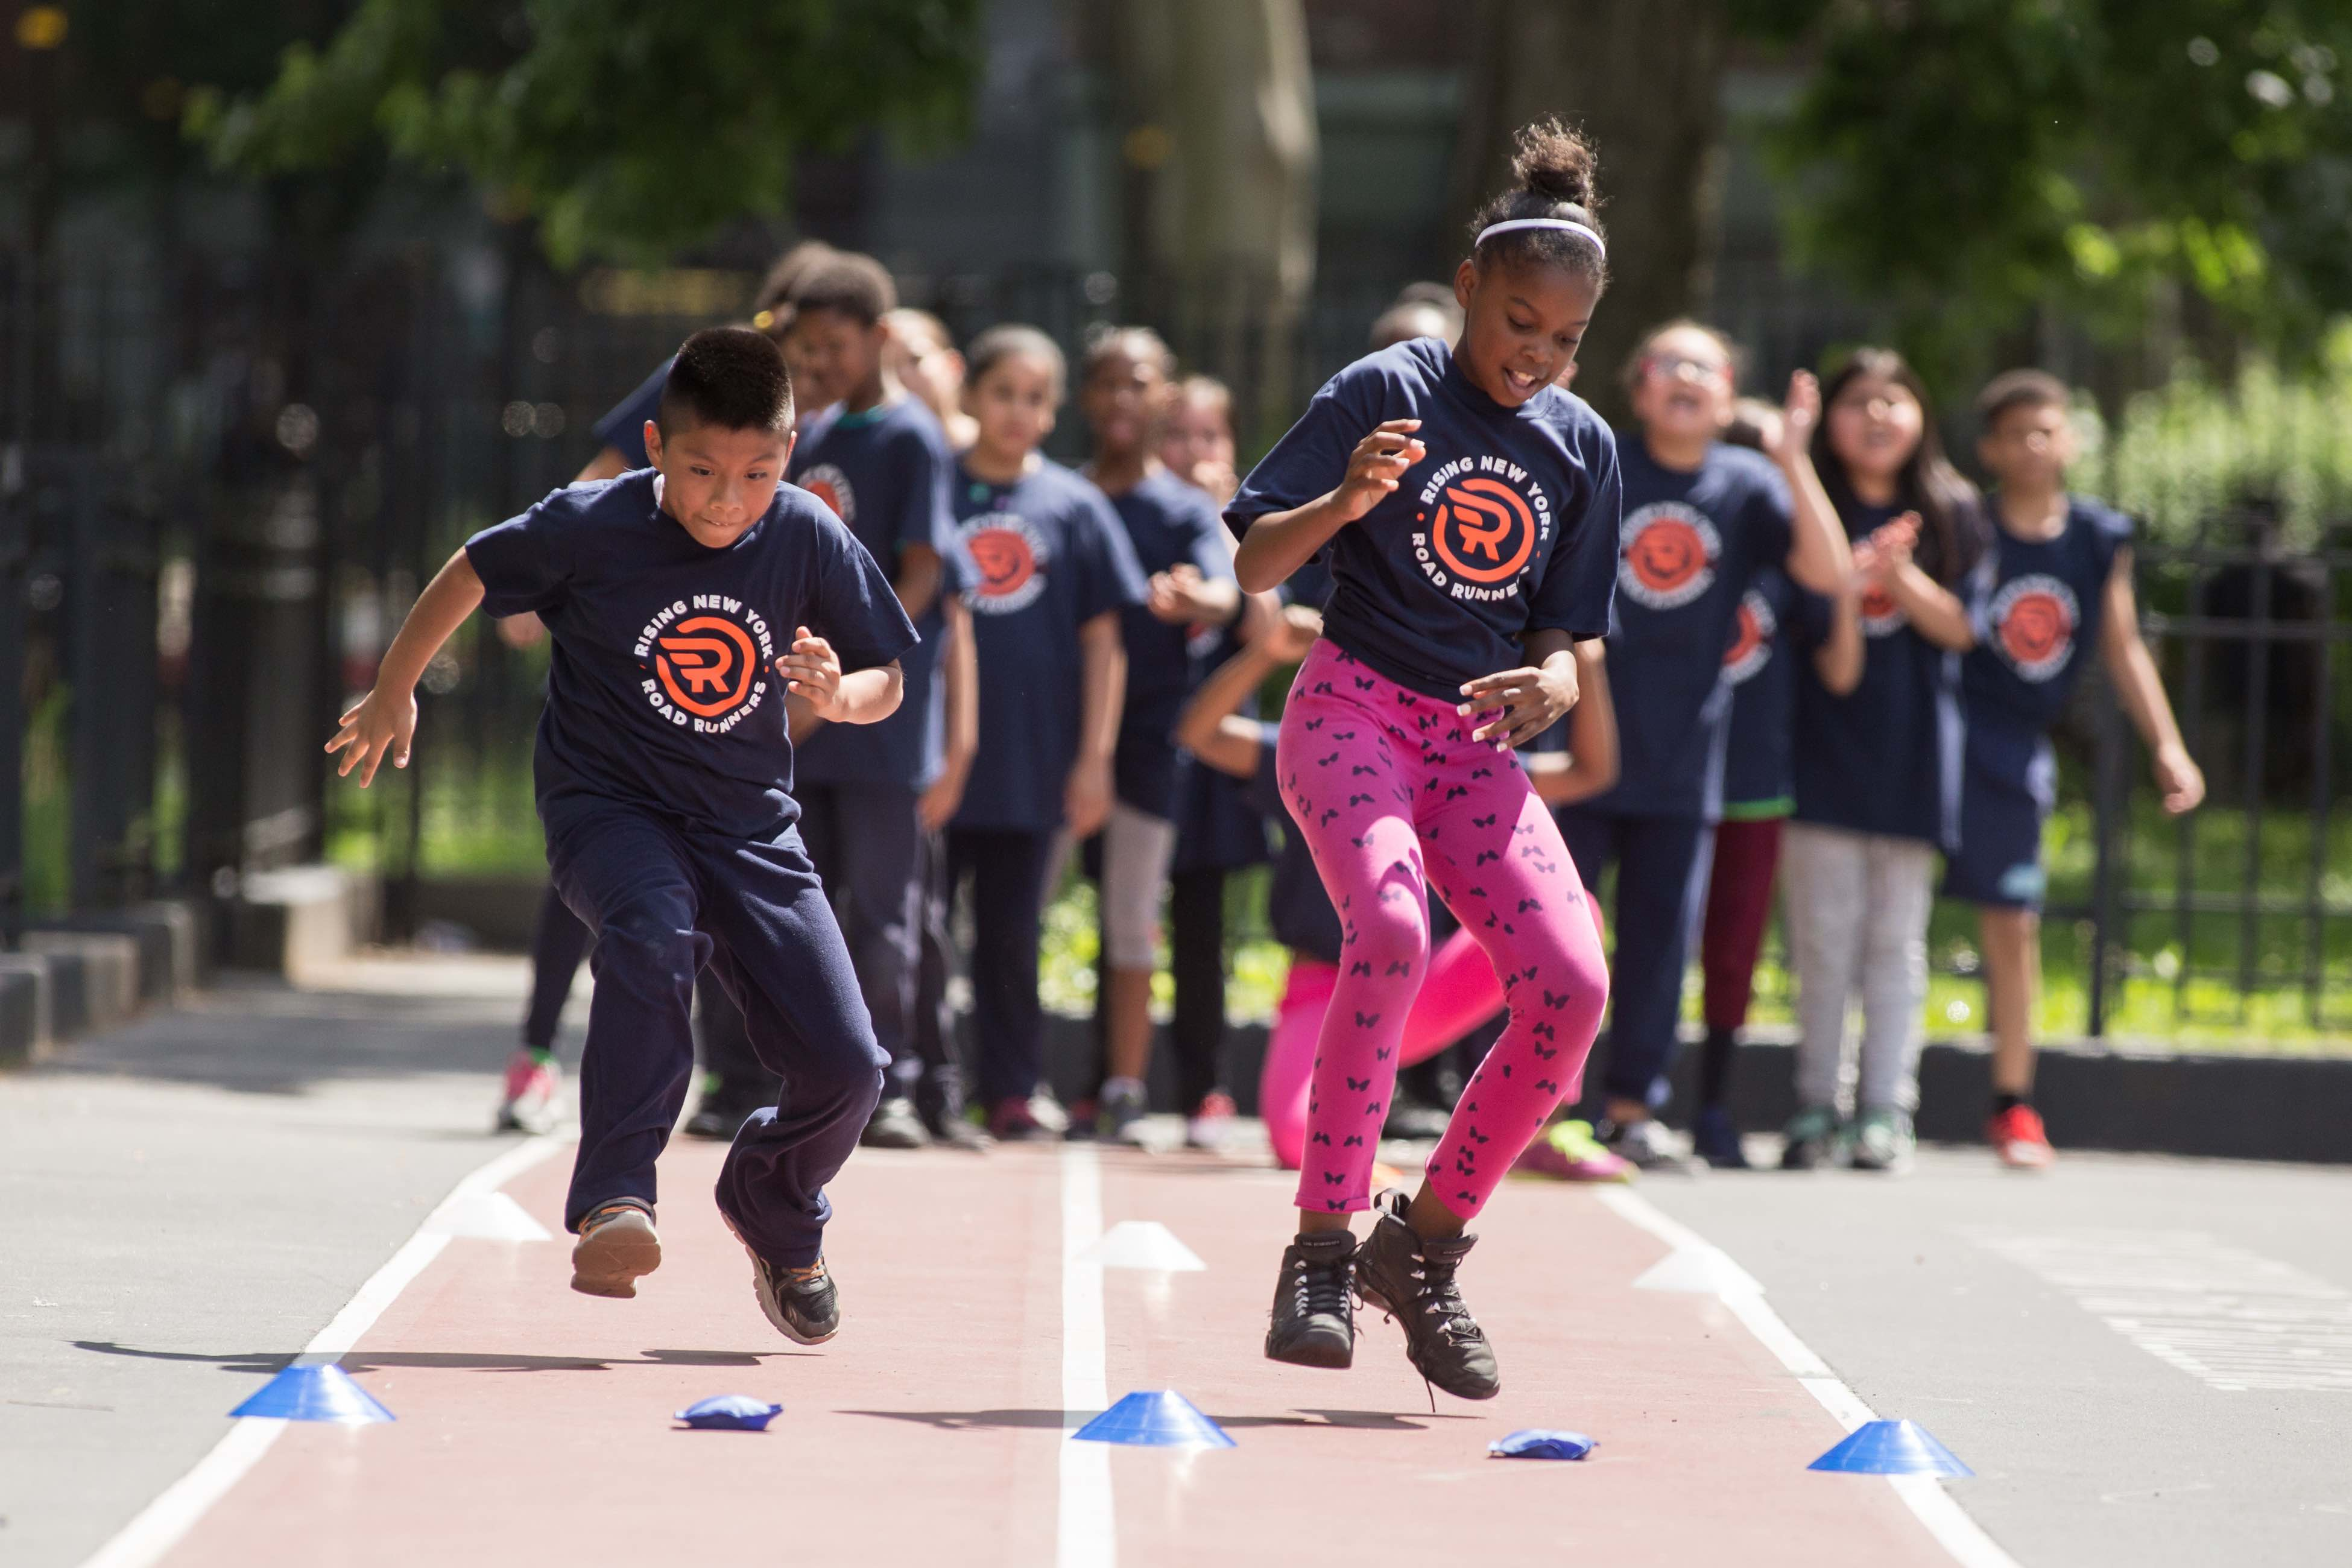 Two Rising New York Road Runners students taking part in fitness activities on a playground track